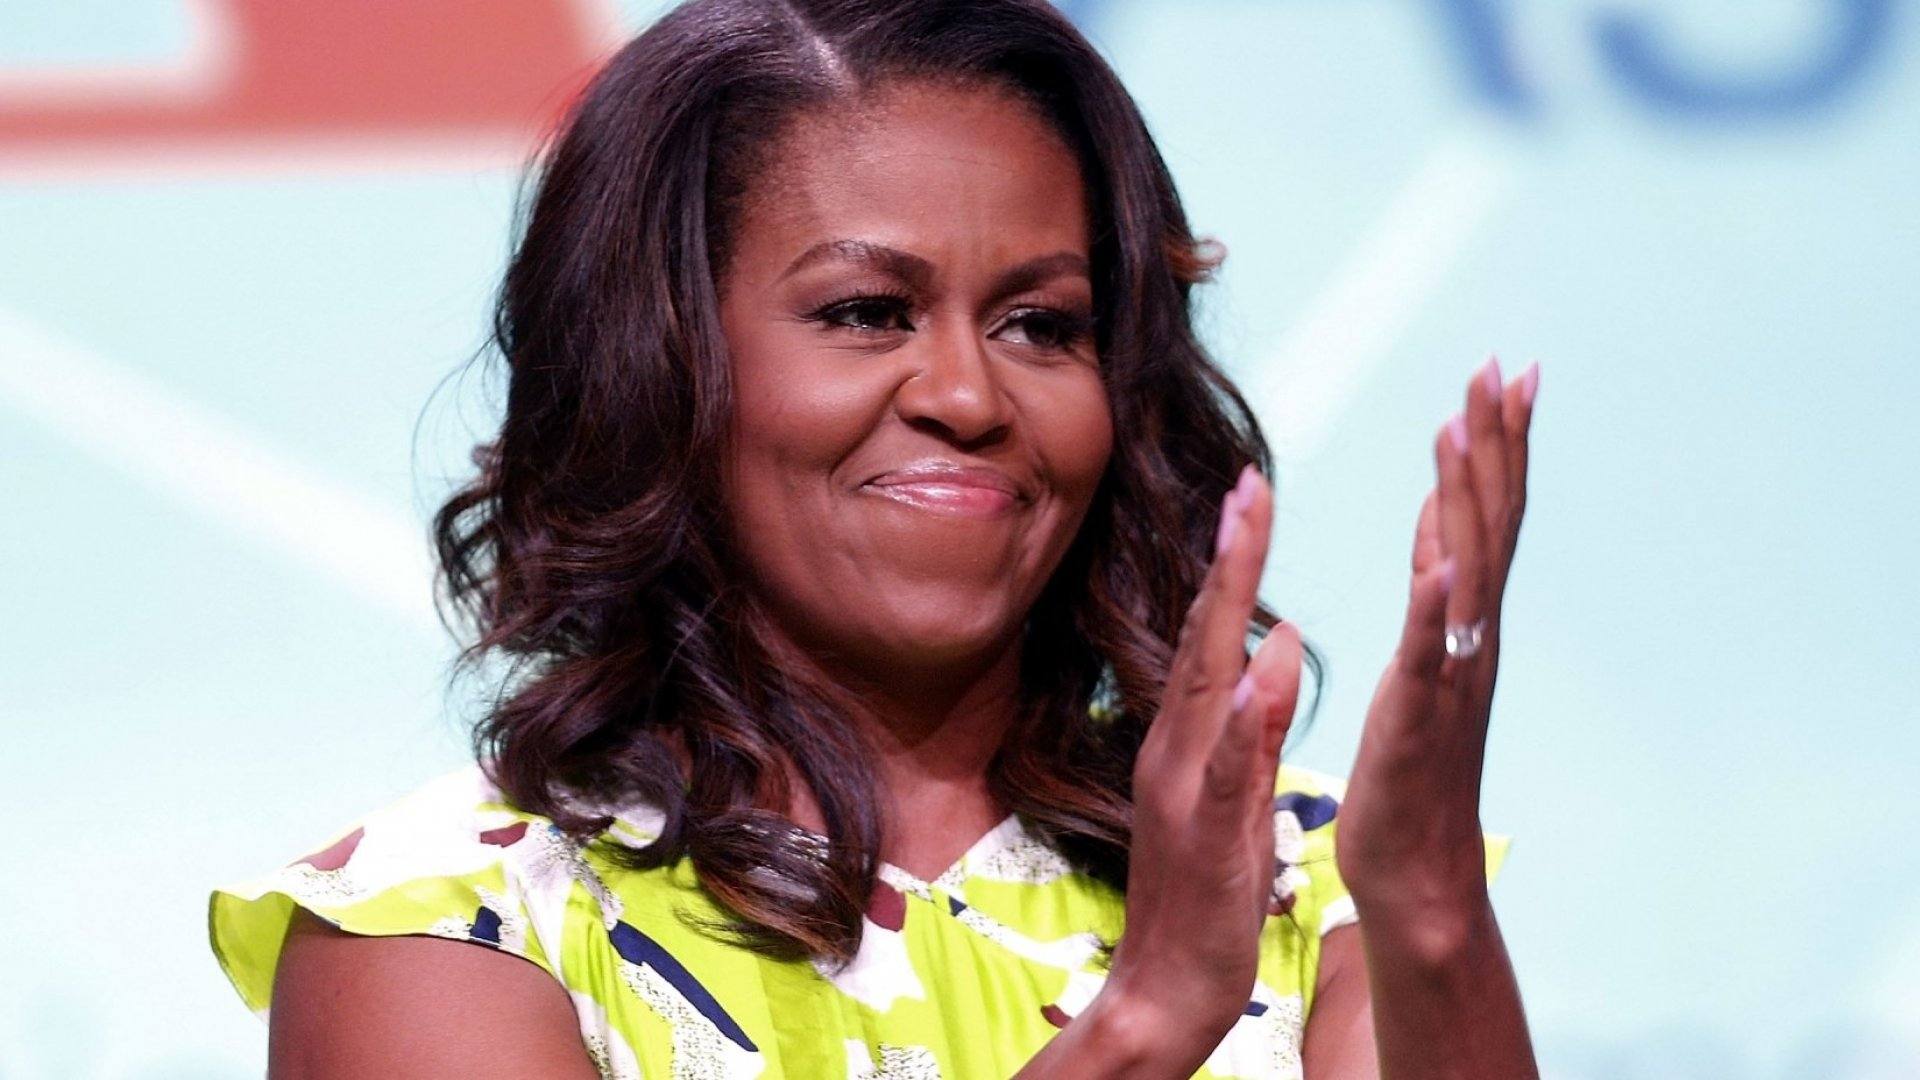 Michelle Obama's Memoir Is Almost The Most Successful in History. Here Are the 4 Best Customer Success Principles I Learned From It